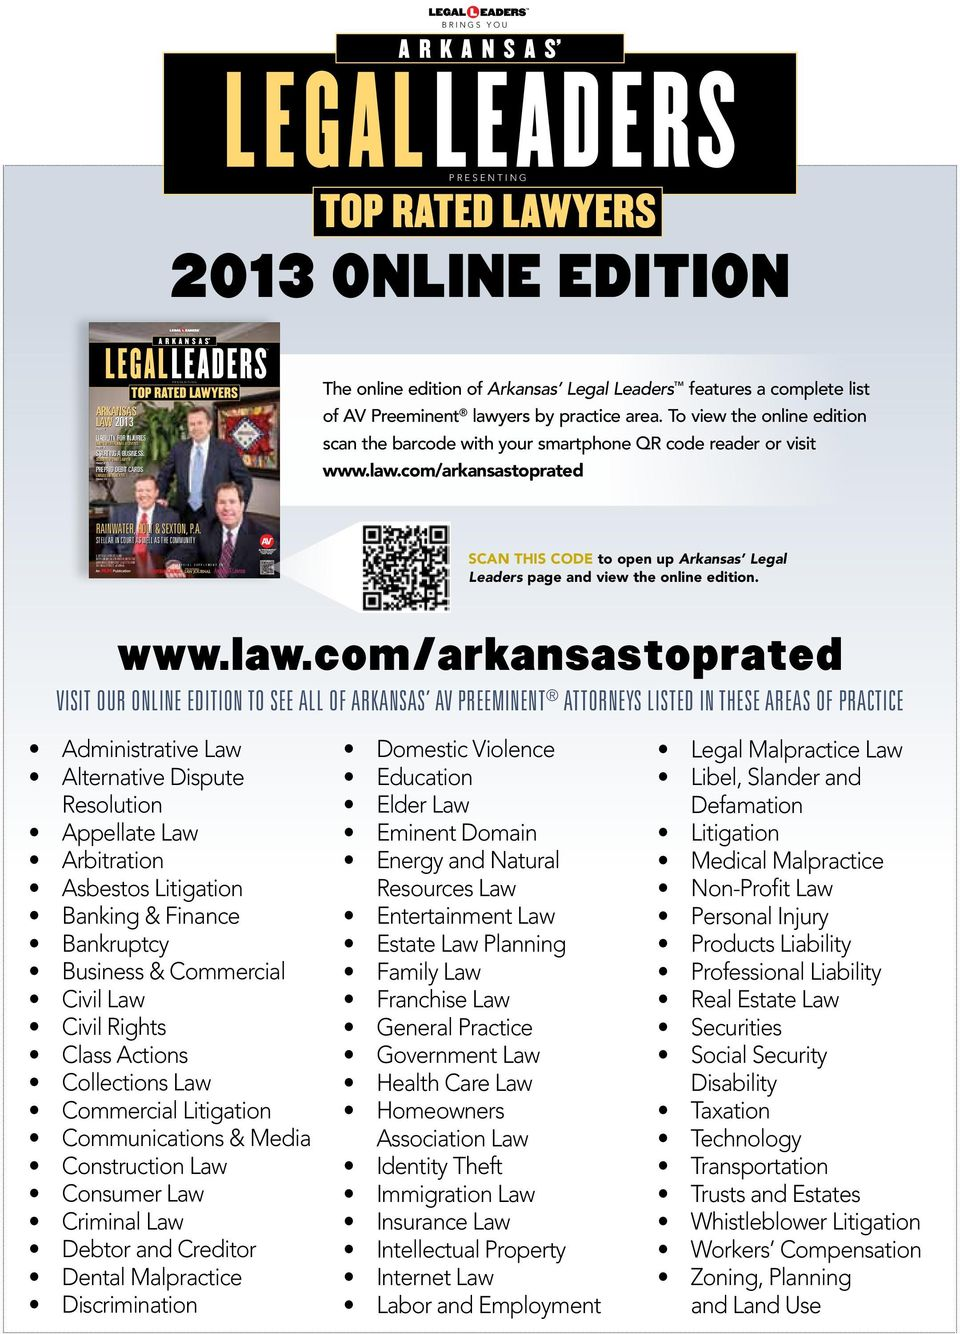 Arkansas Legal Leaders features a complete list of AV Preeminent lawyers by practice area. To view the online edition scan the barcode with your smartphone QR code reader or visit www.law.com/arkansastoprated RAINWATER, HOLT & SEXTON, P.